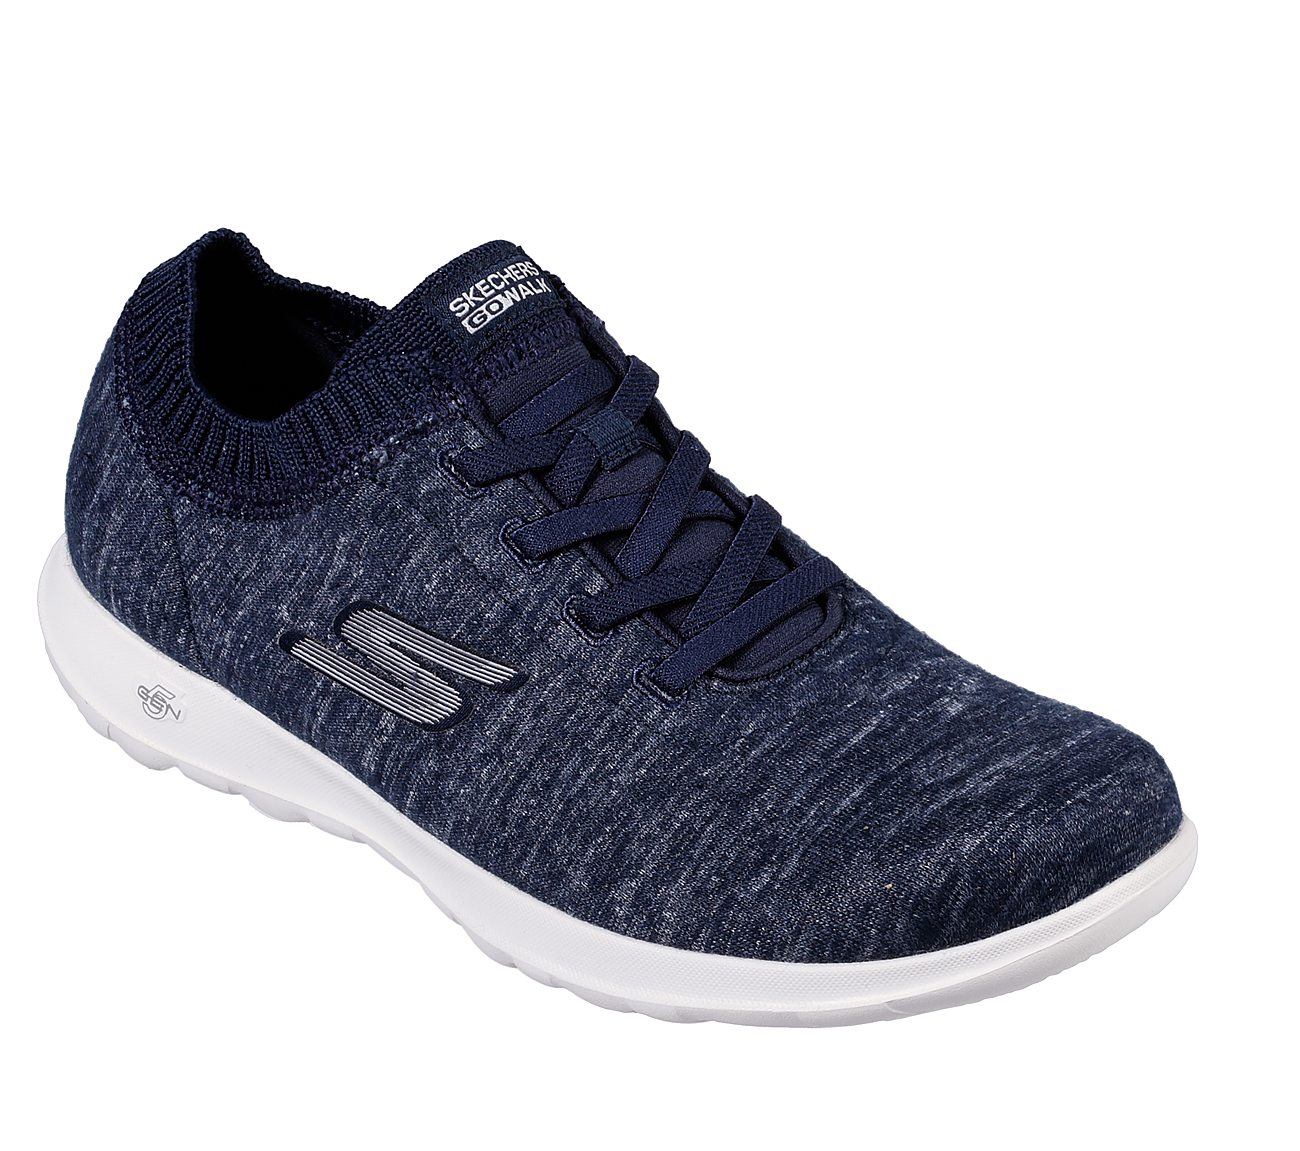 free shipping newest clearance footlocker Women's Skechers GOwalk Lite - Floret from china free shipping low shipping fee sale online buy cheap finishline shBBFv